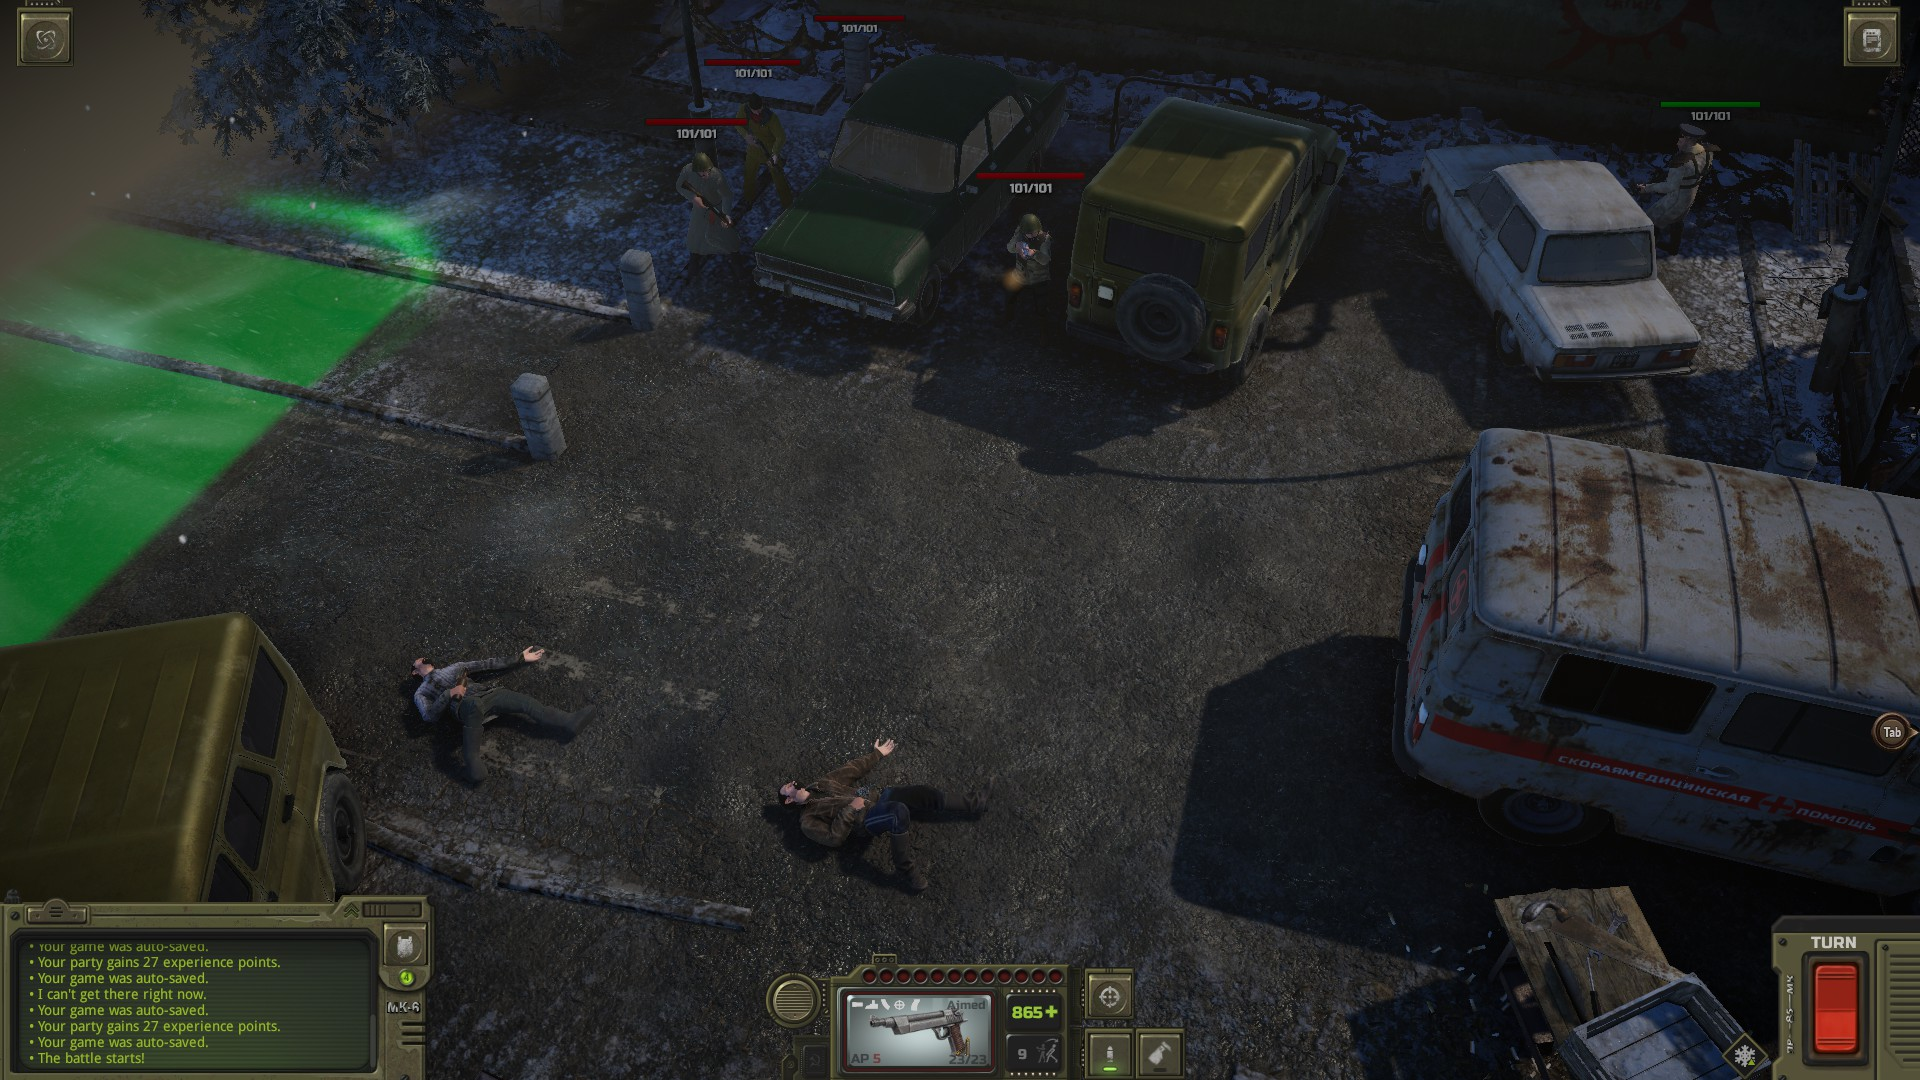 ATOM RPG Trudograd How to Get (Escalation of Conflict) Achievements in Game Tips - Walkthrough - 2B119DD